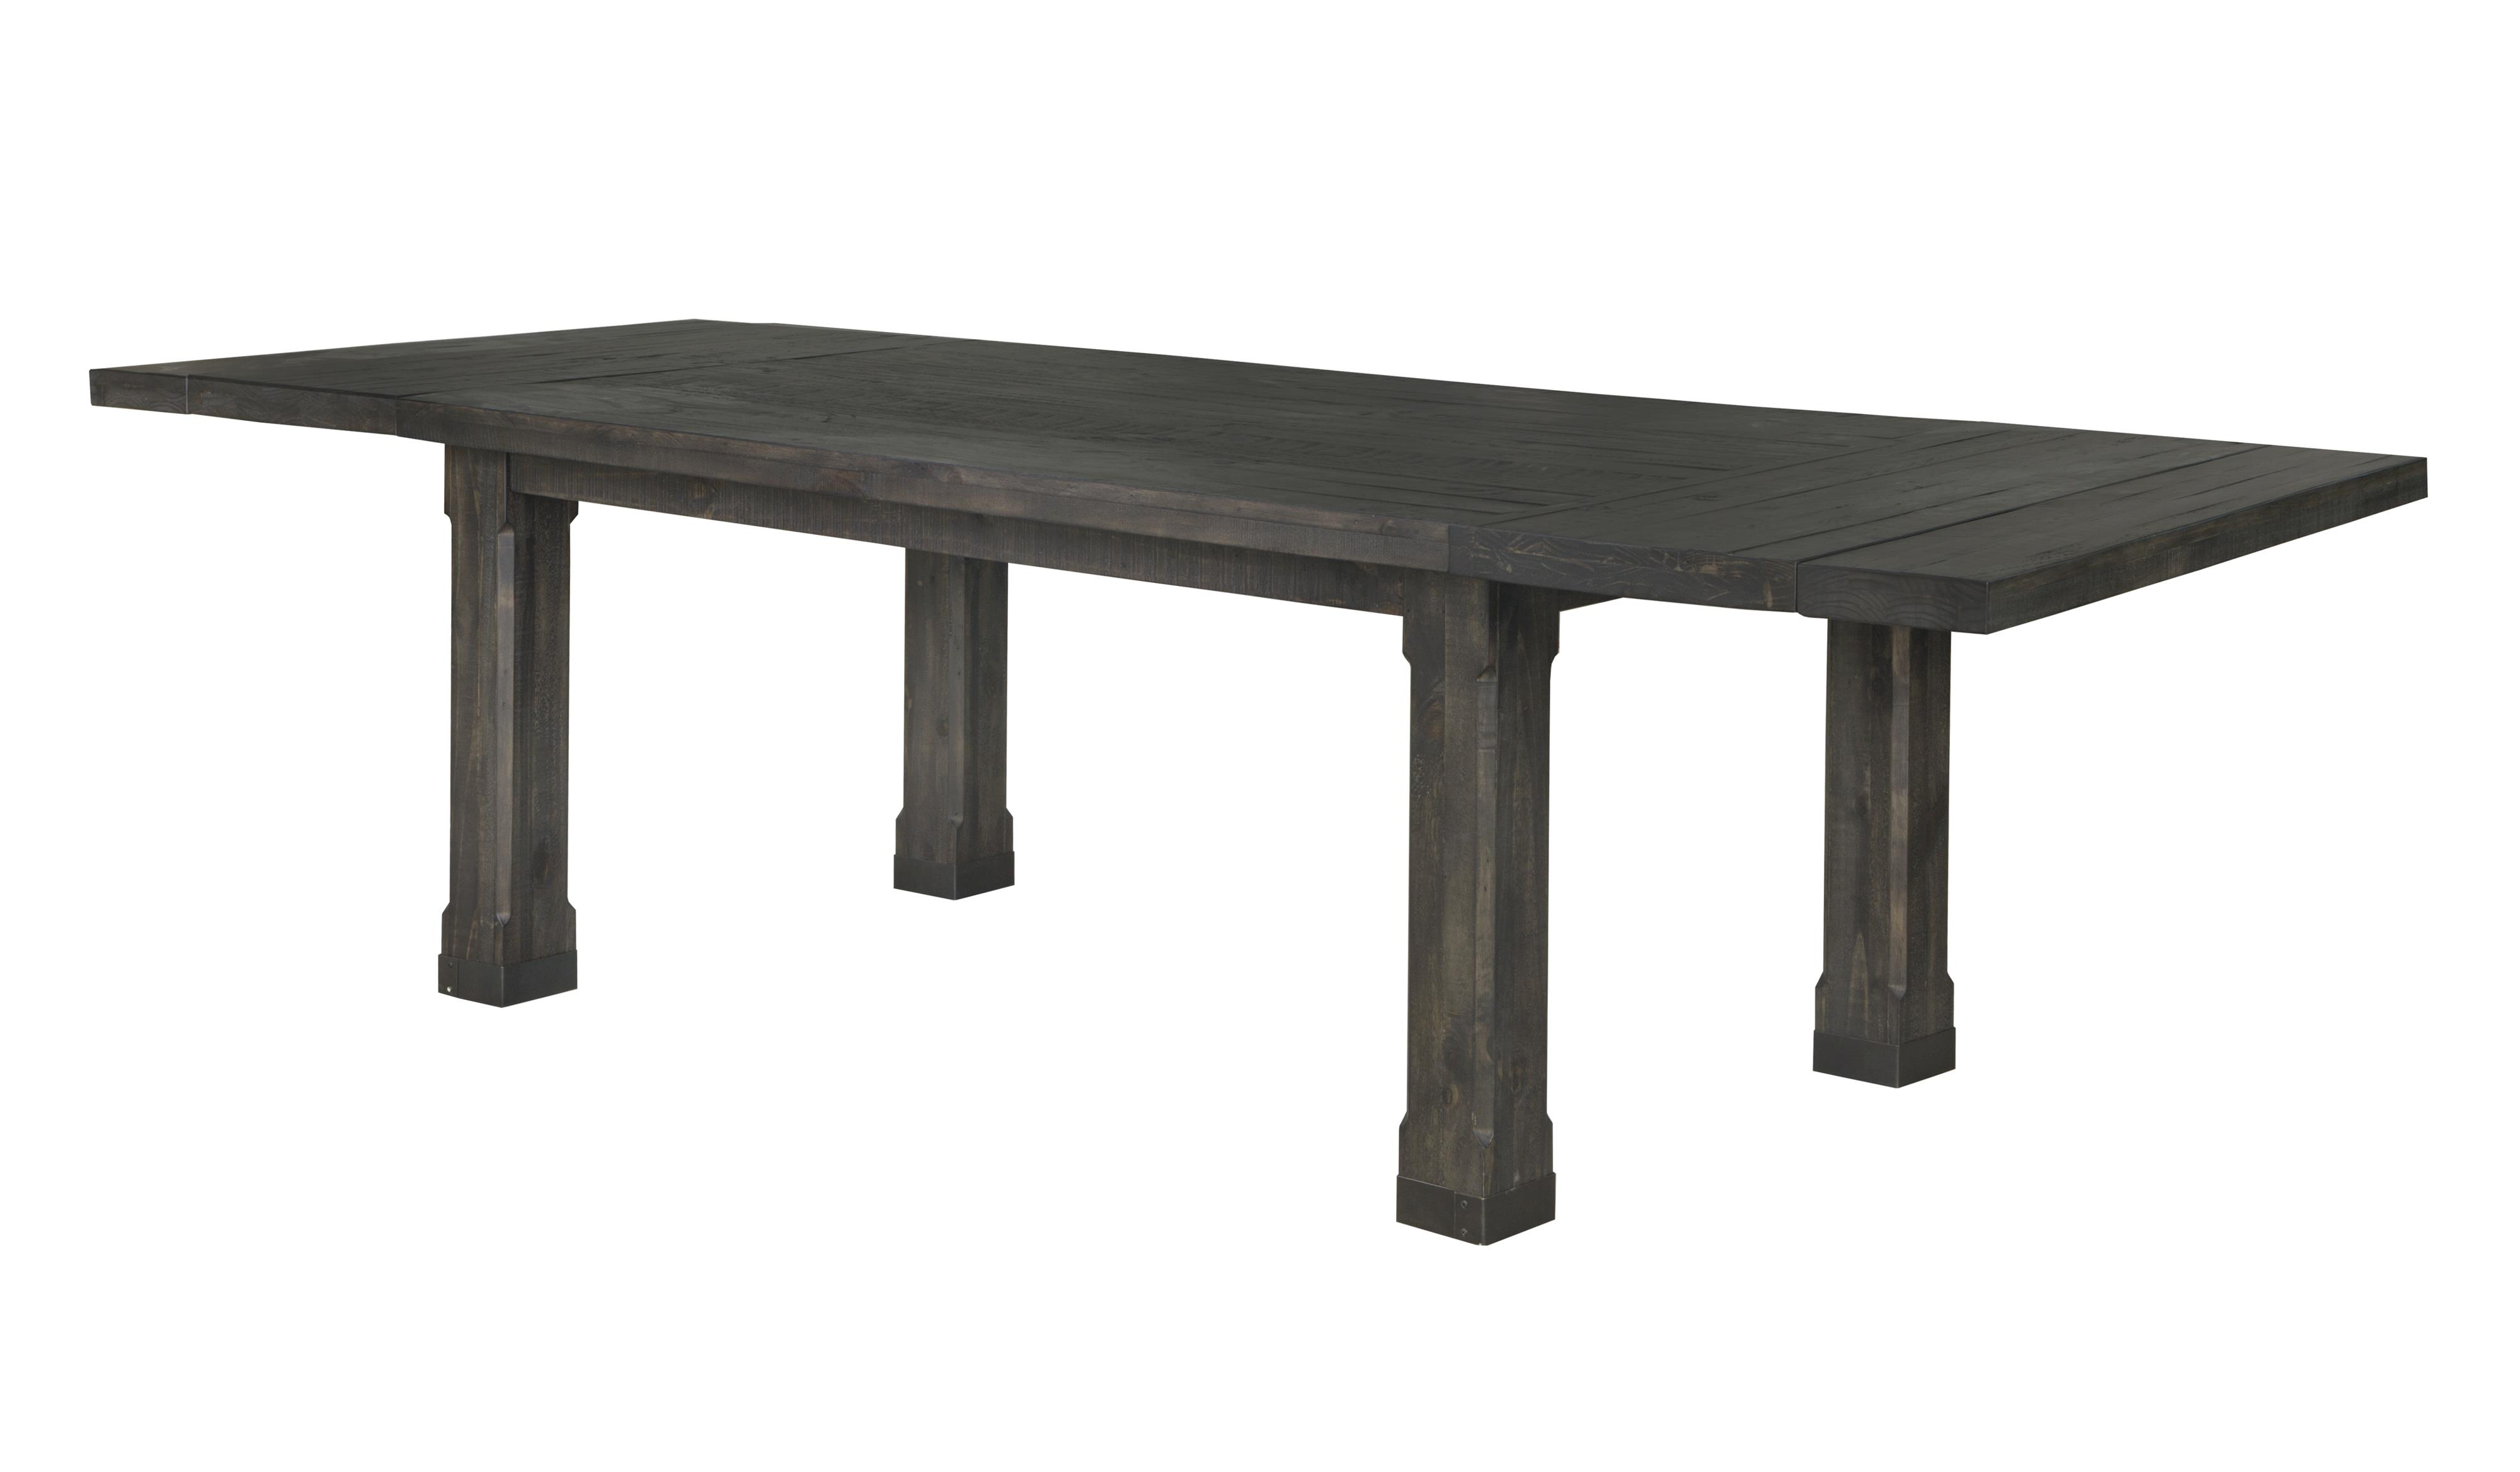 Abington Rectangular Dining Table by Magnussen Home at Dunk & Bright Furniture